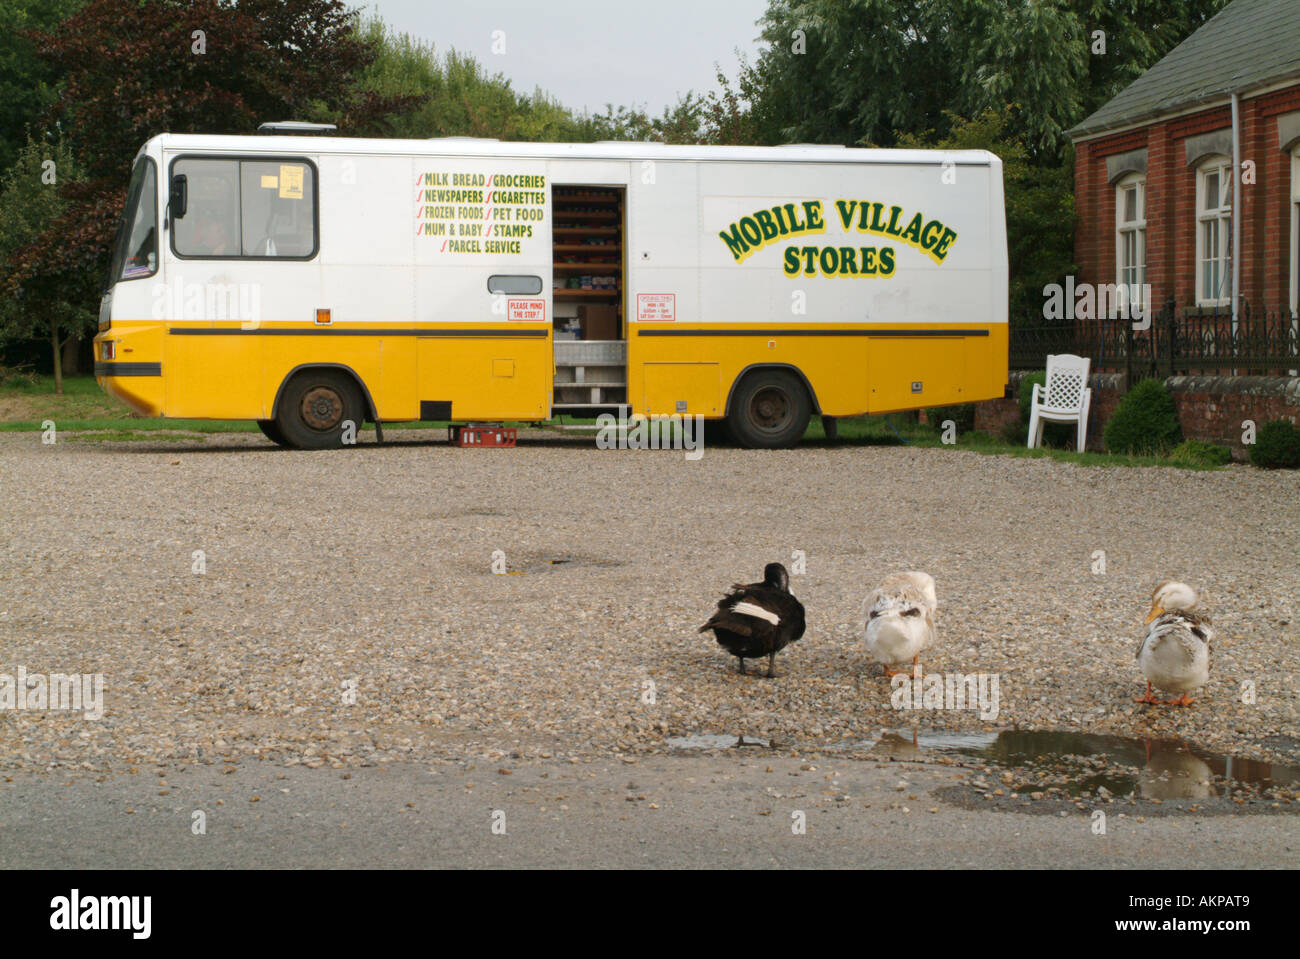 Mobile Shop Van Stock Photos & Mobile Shop Van Stock Images - Alamy